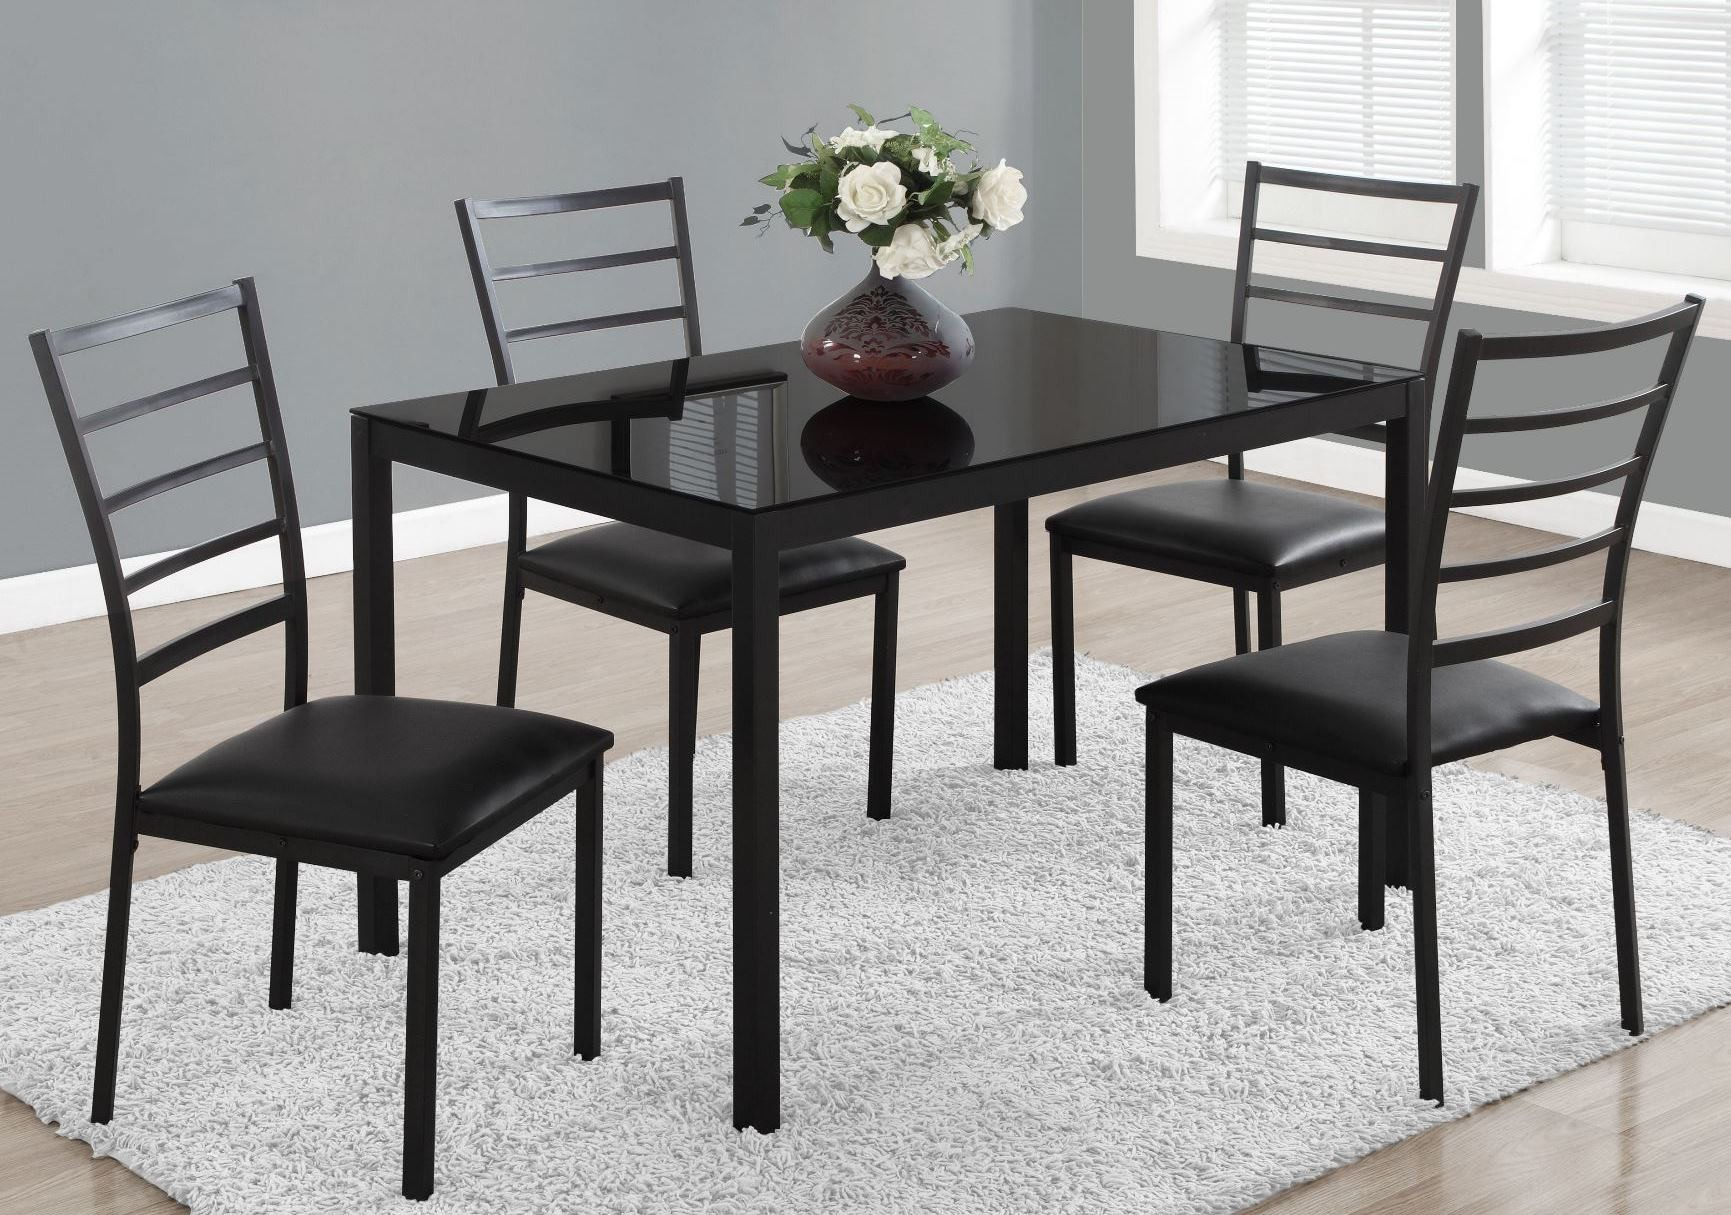 Black metal 5 piece rectangular dining room set 1025 monarch for 5 piece dining room sets